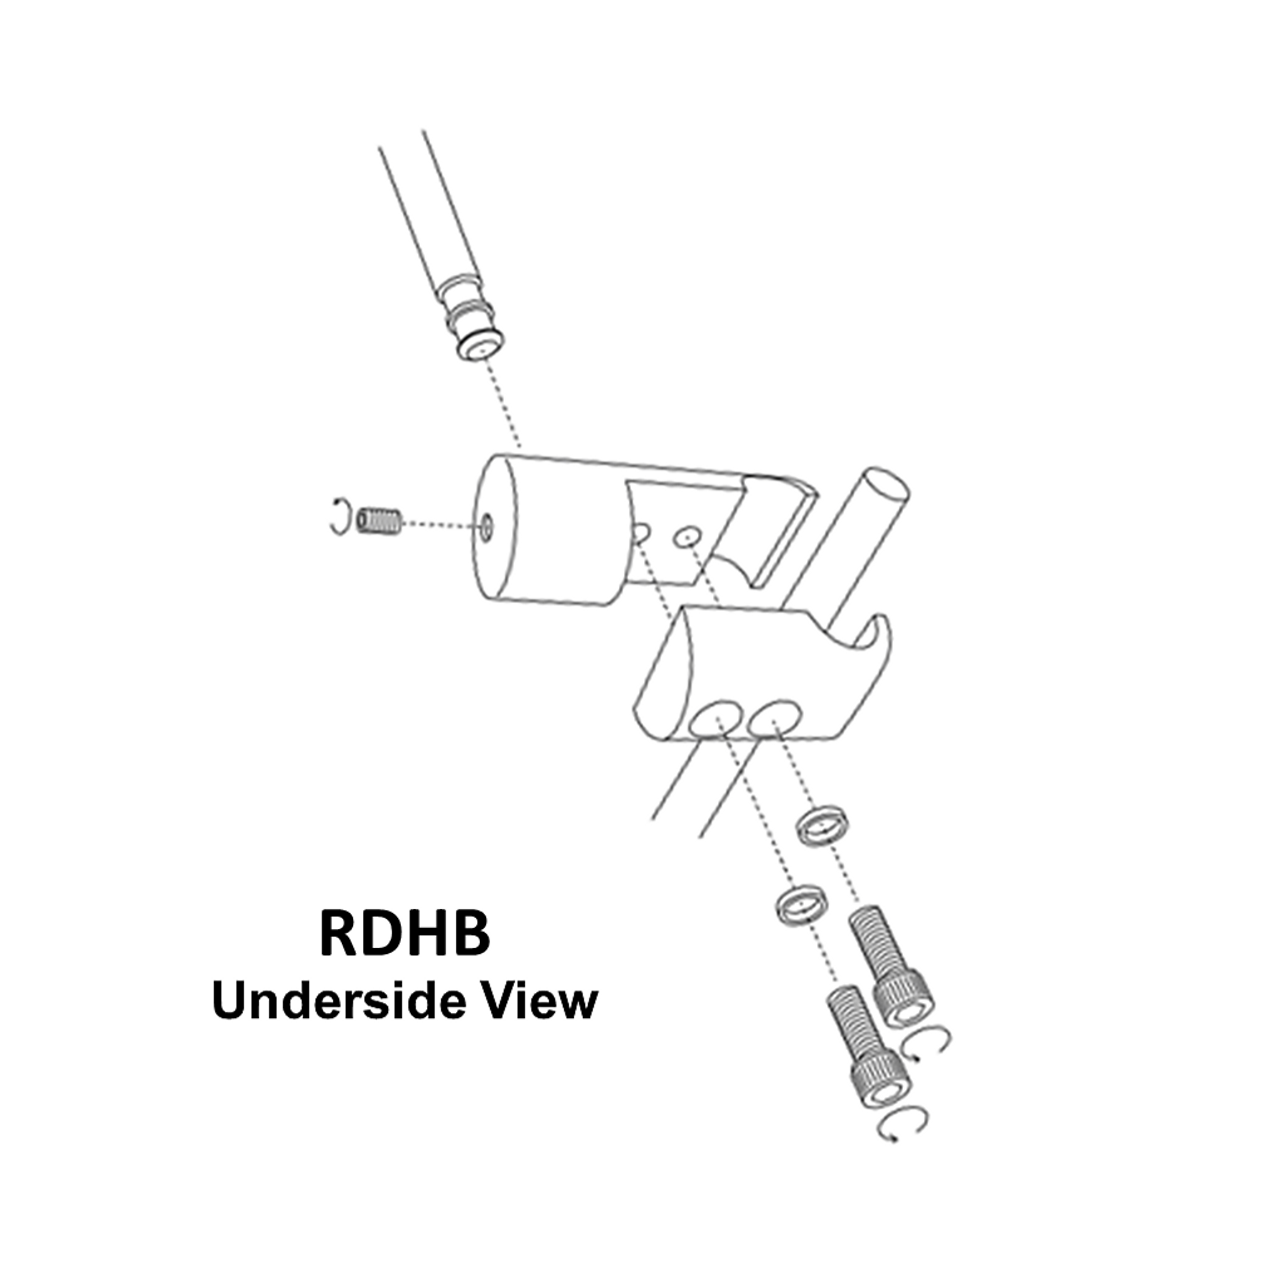 RDHB installation diagram (exploded view); shown from underside